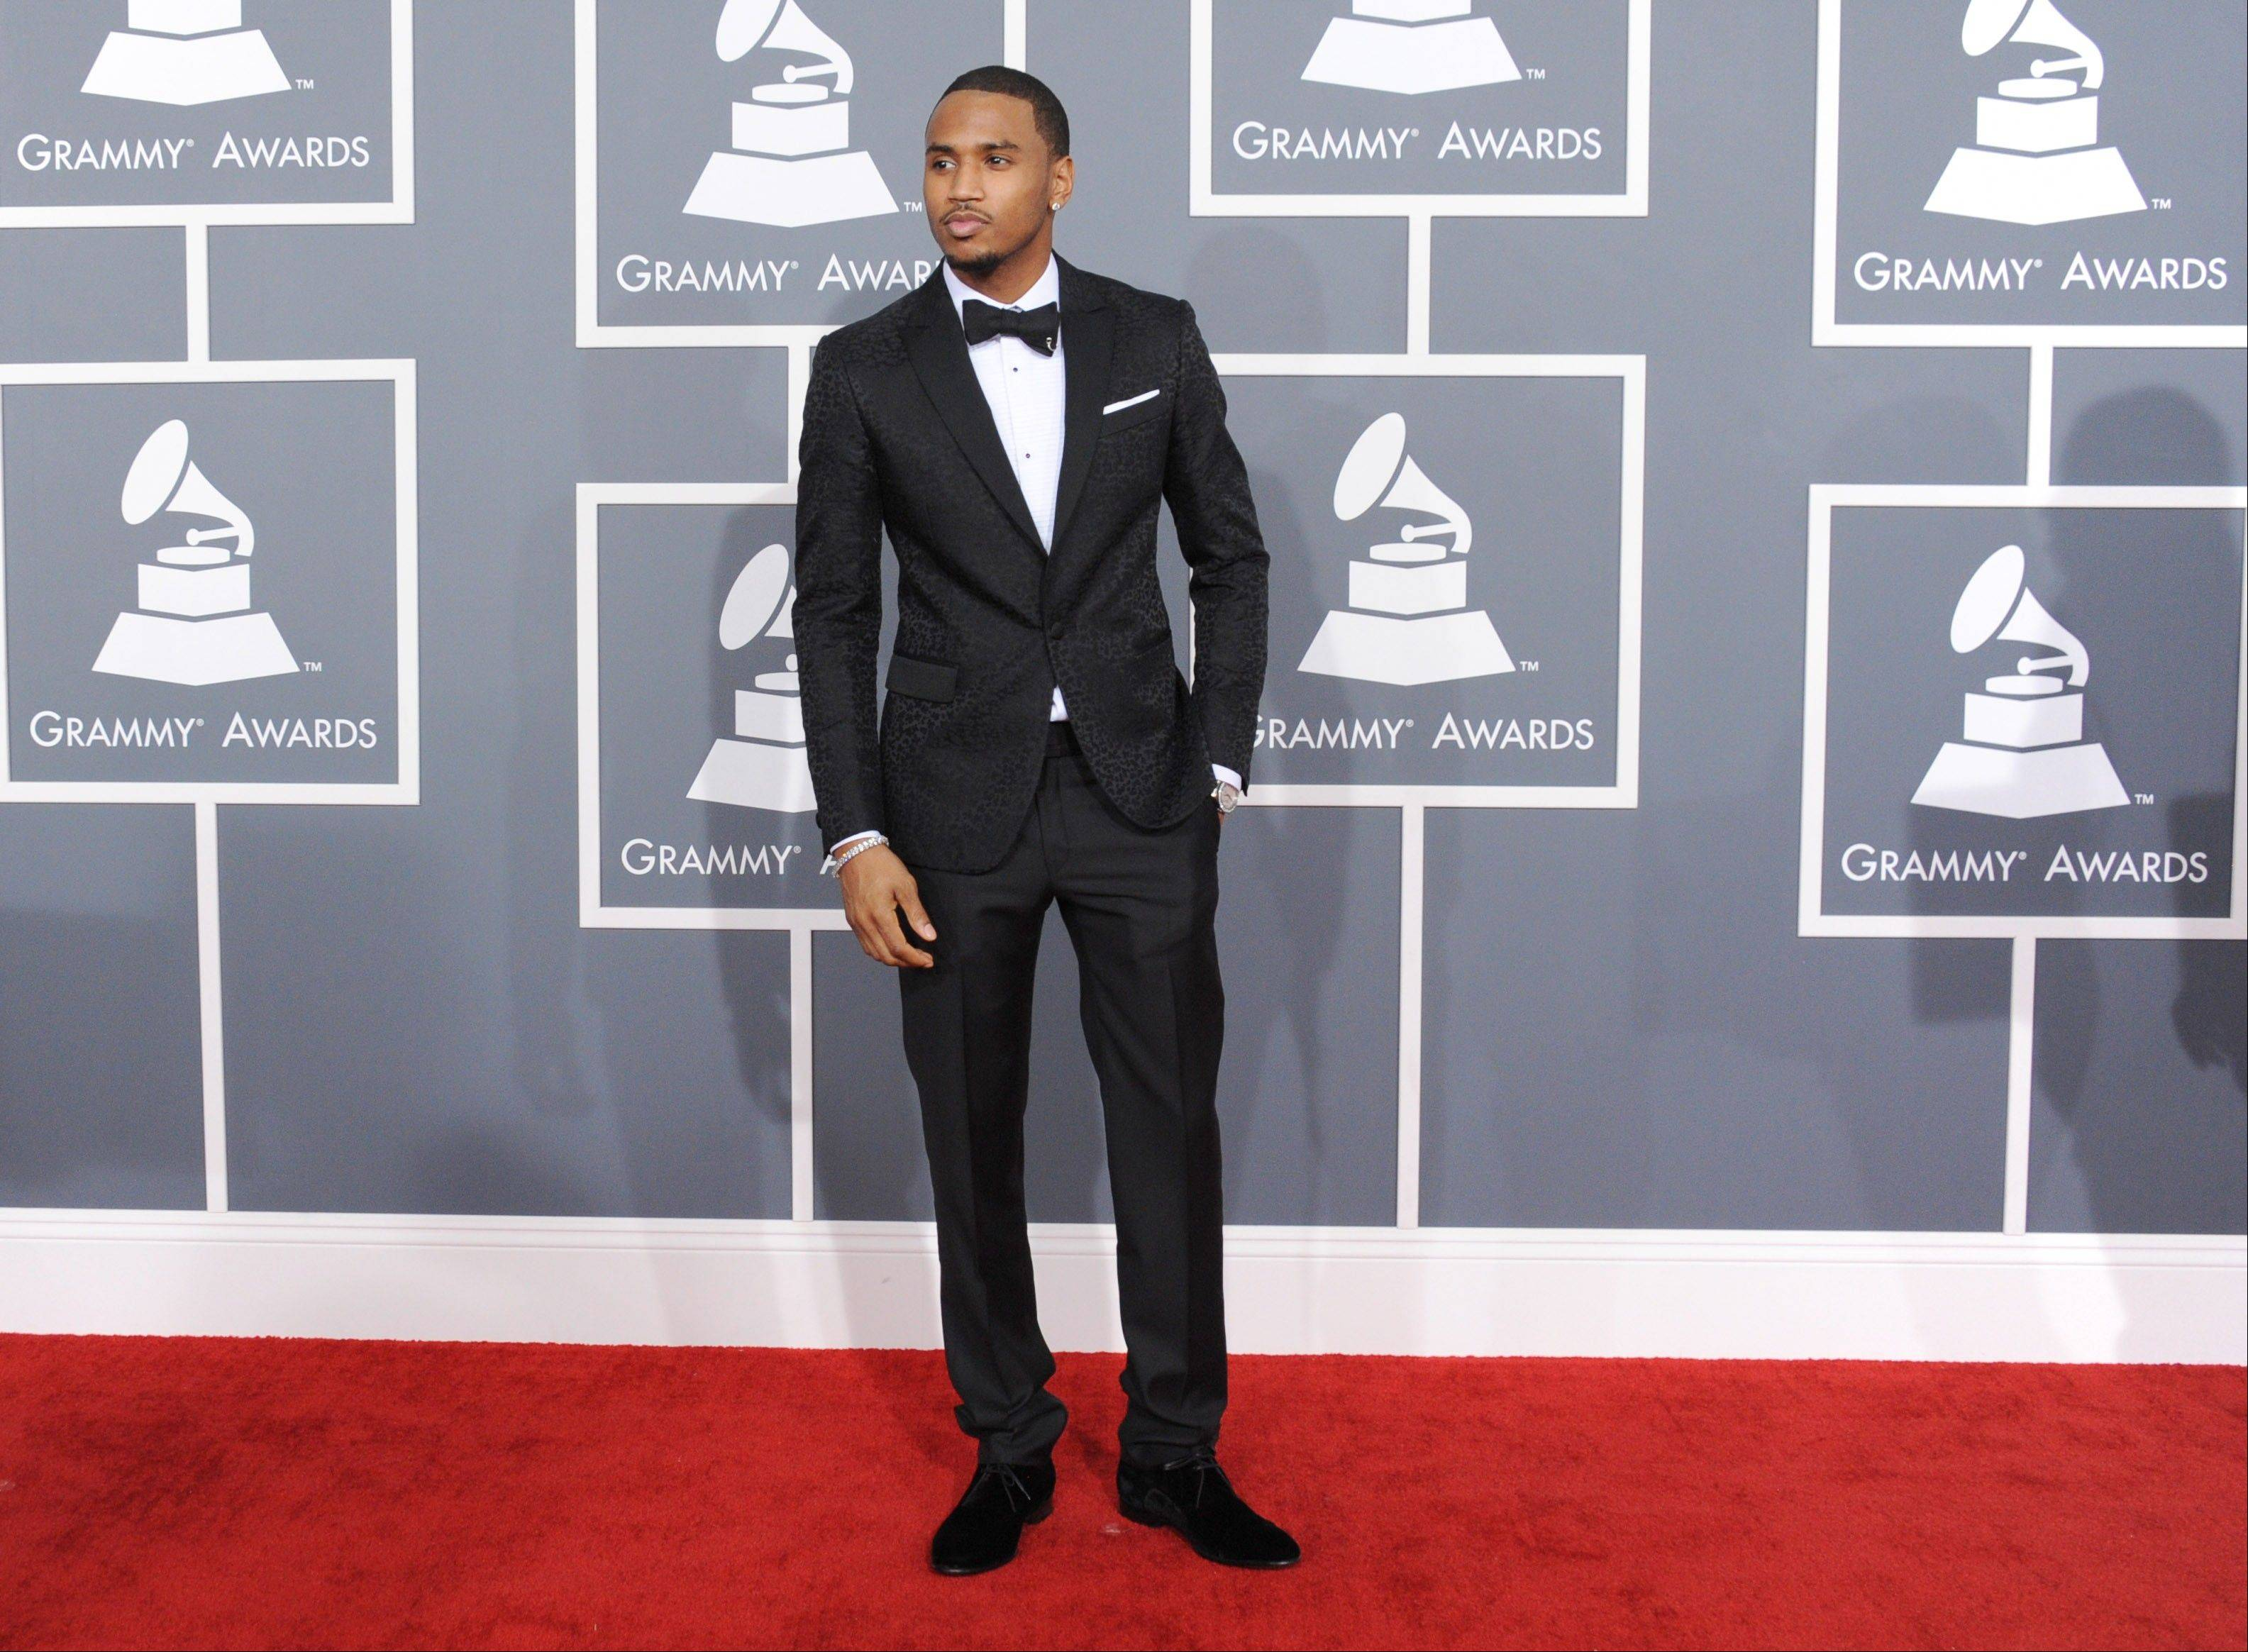 MusicianTrey Songz arrives at the 55th annual Grammy Awards on Sunday, Feb. 10, 2013, in Los Angeles.